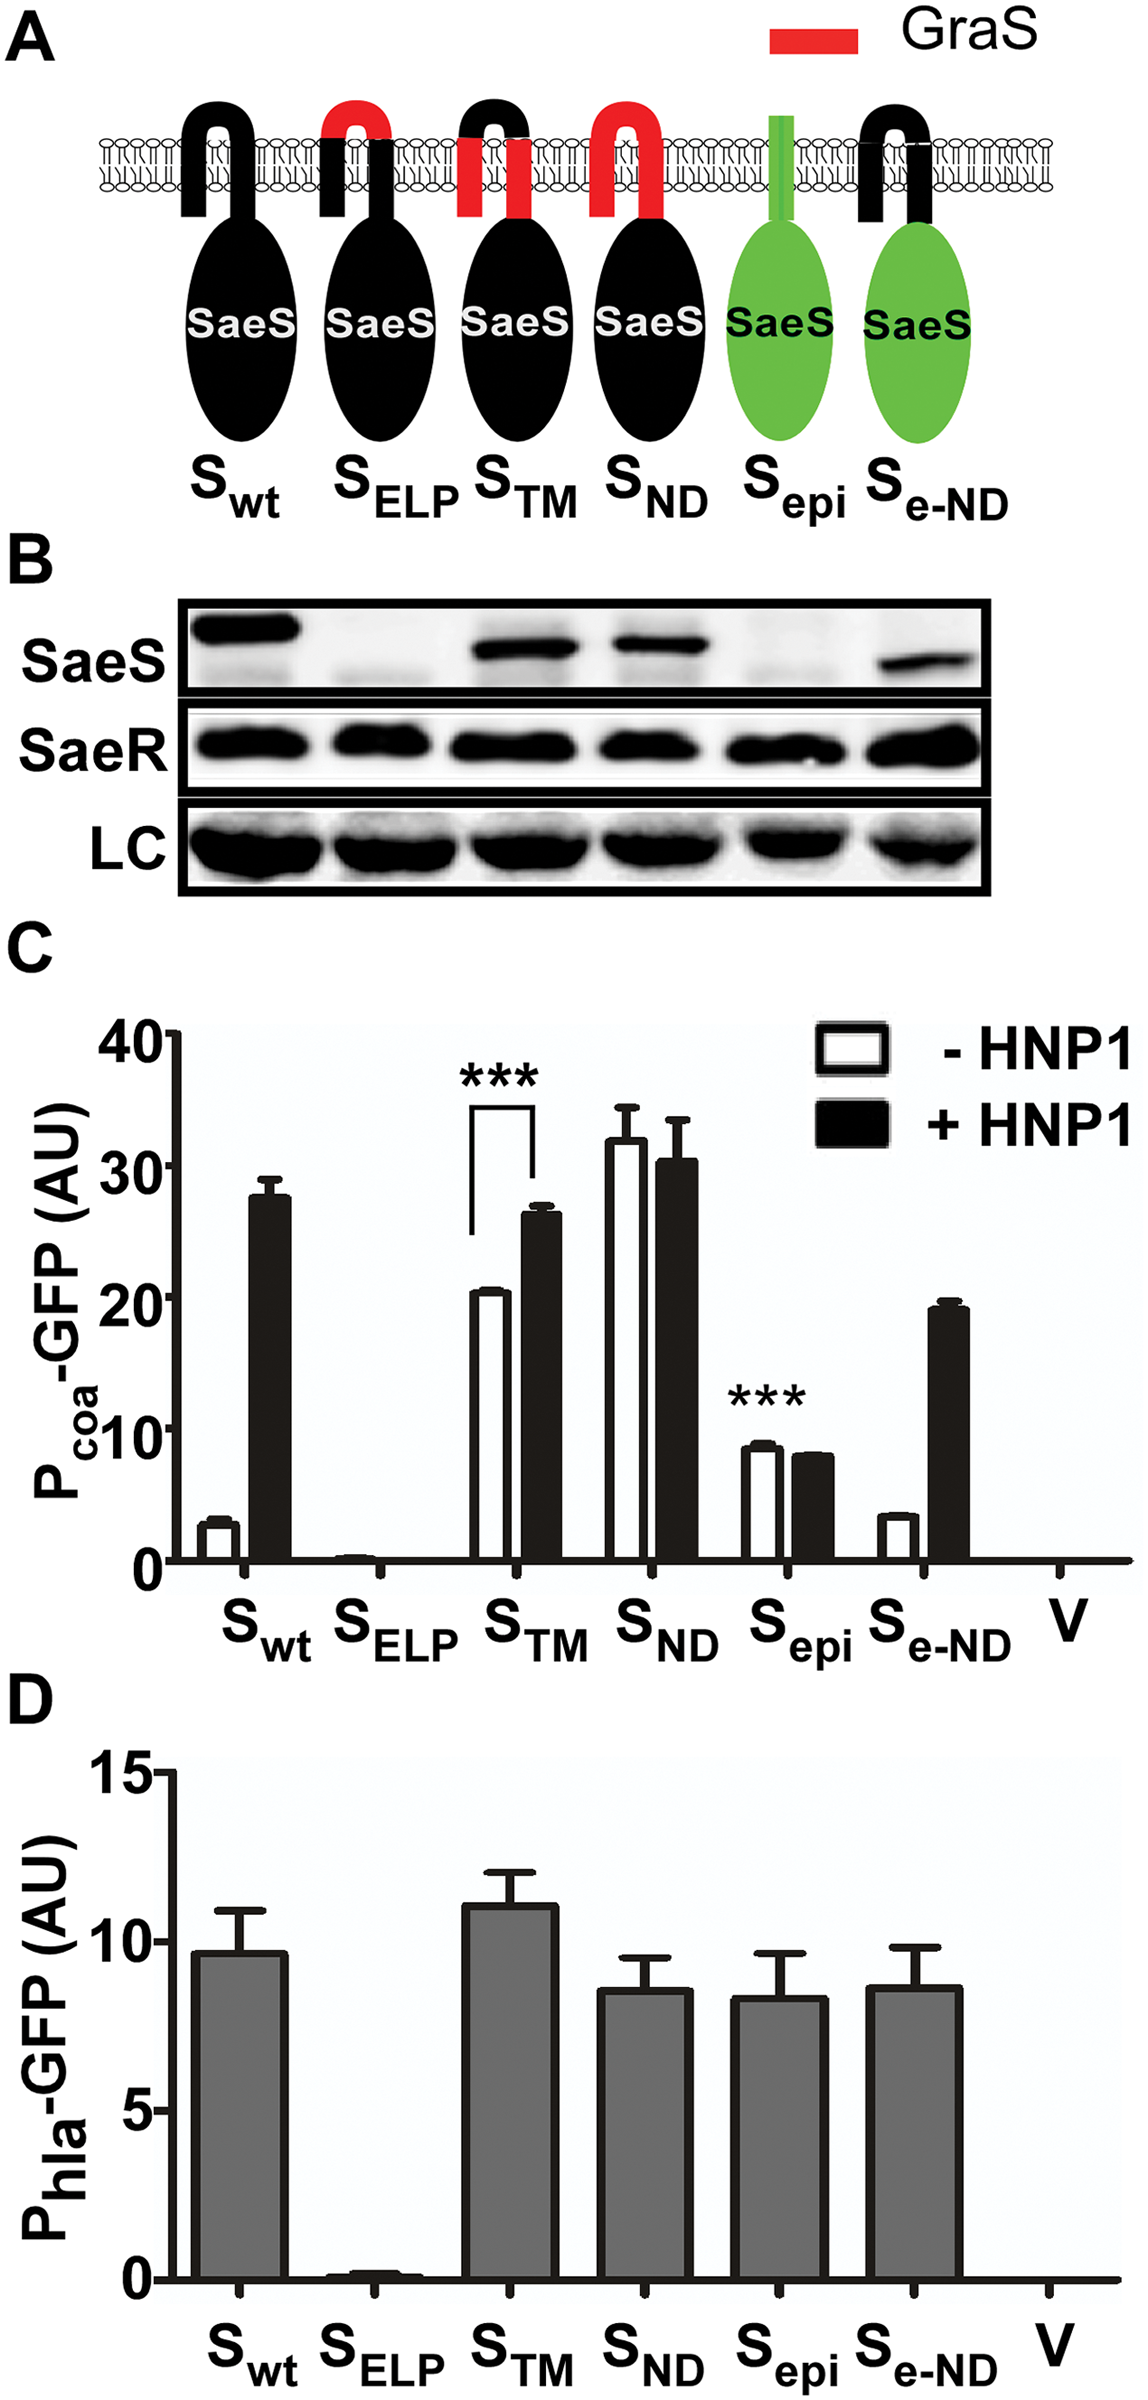 The N-terminal domain of SaeS controls the basal expression level and response to HNP1.